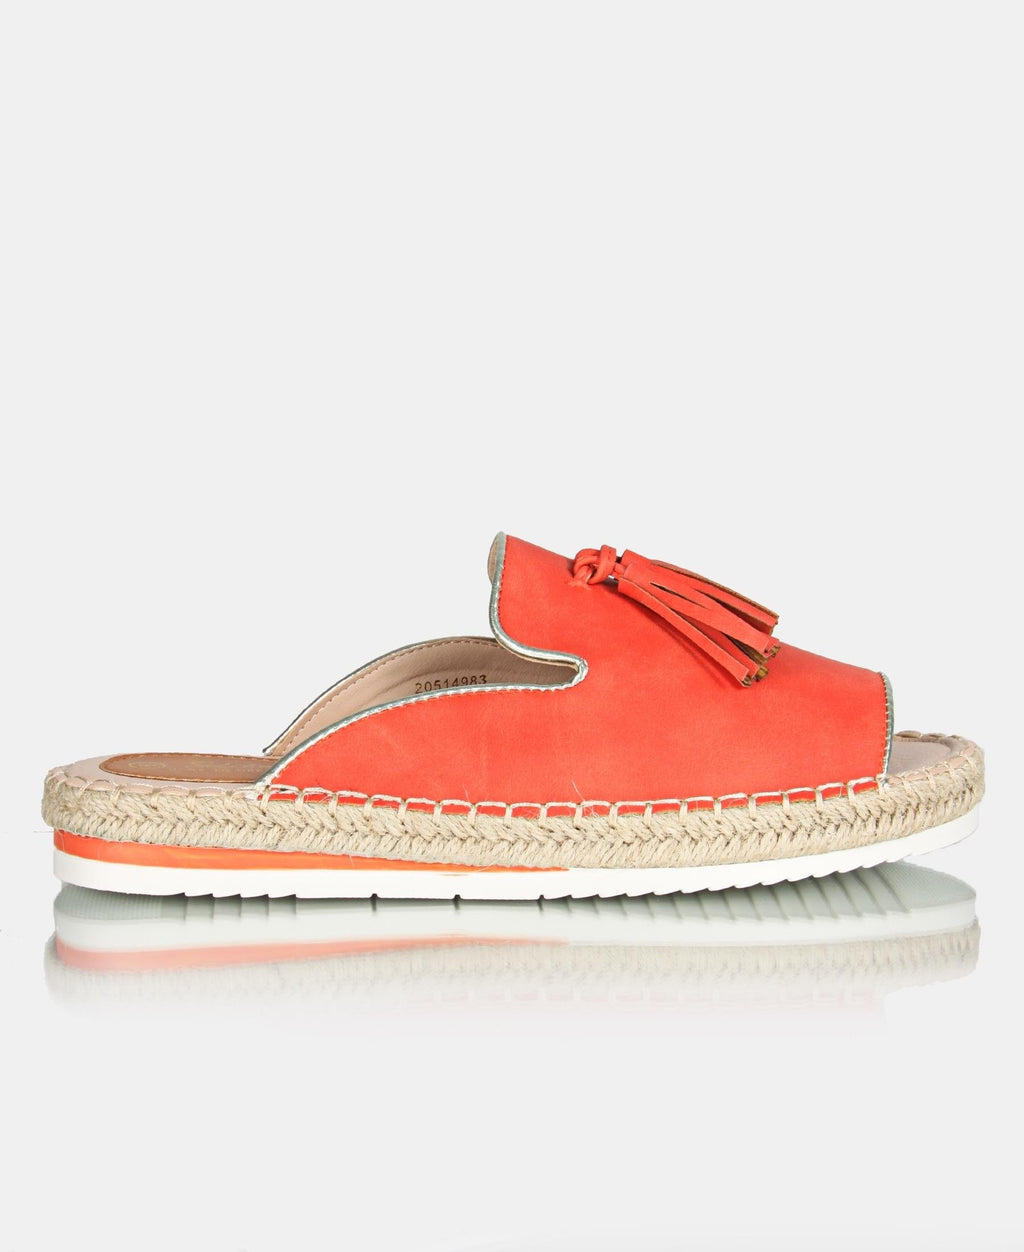 Ladies Orange Peep Toe Espadrille Sandals - Sandals